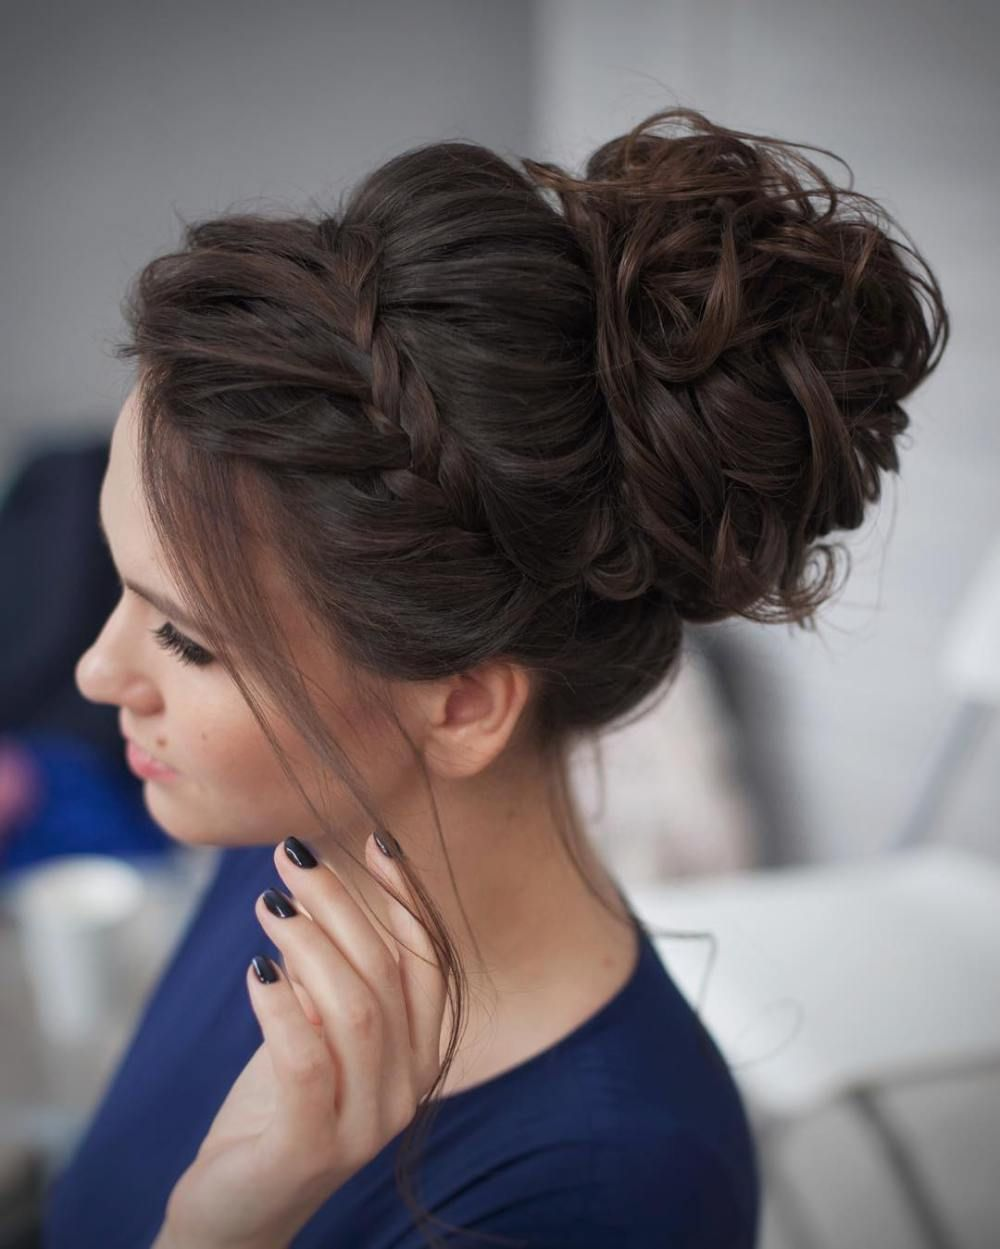 Messy Curled Updo With A Braid Cute Stuff Pinterest Updo